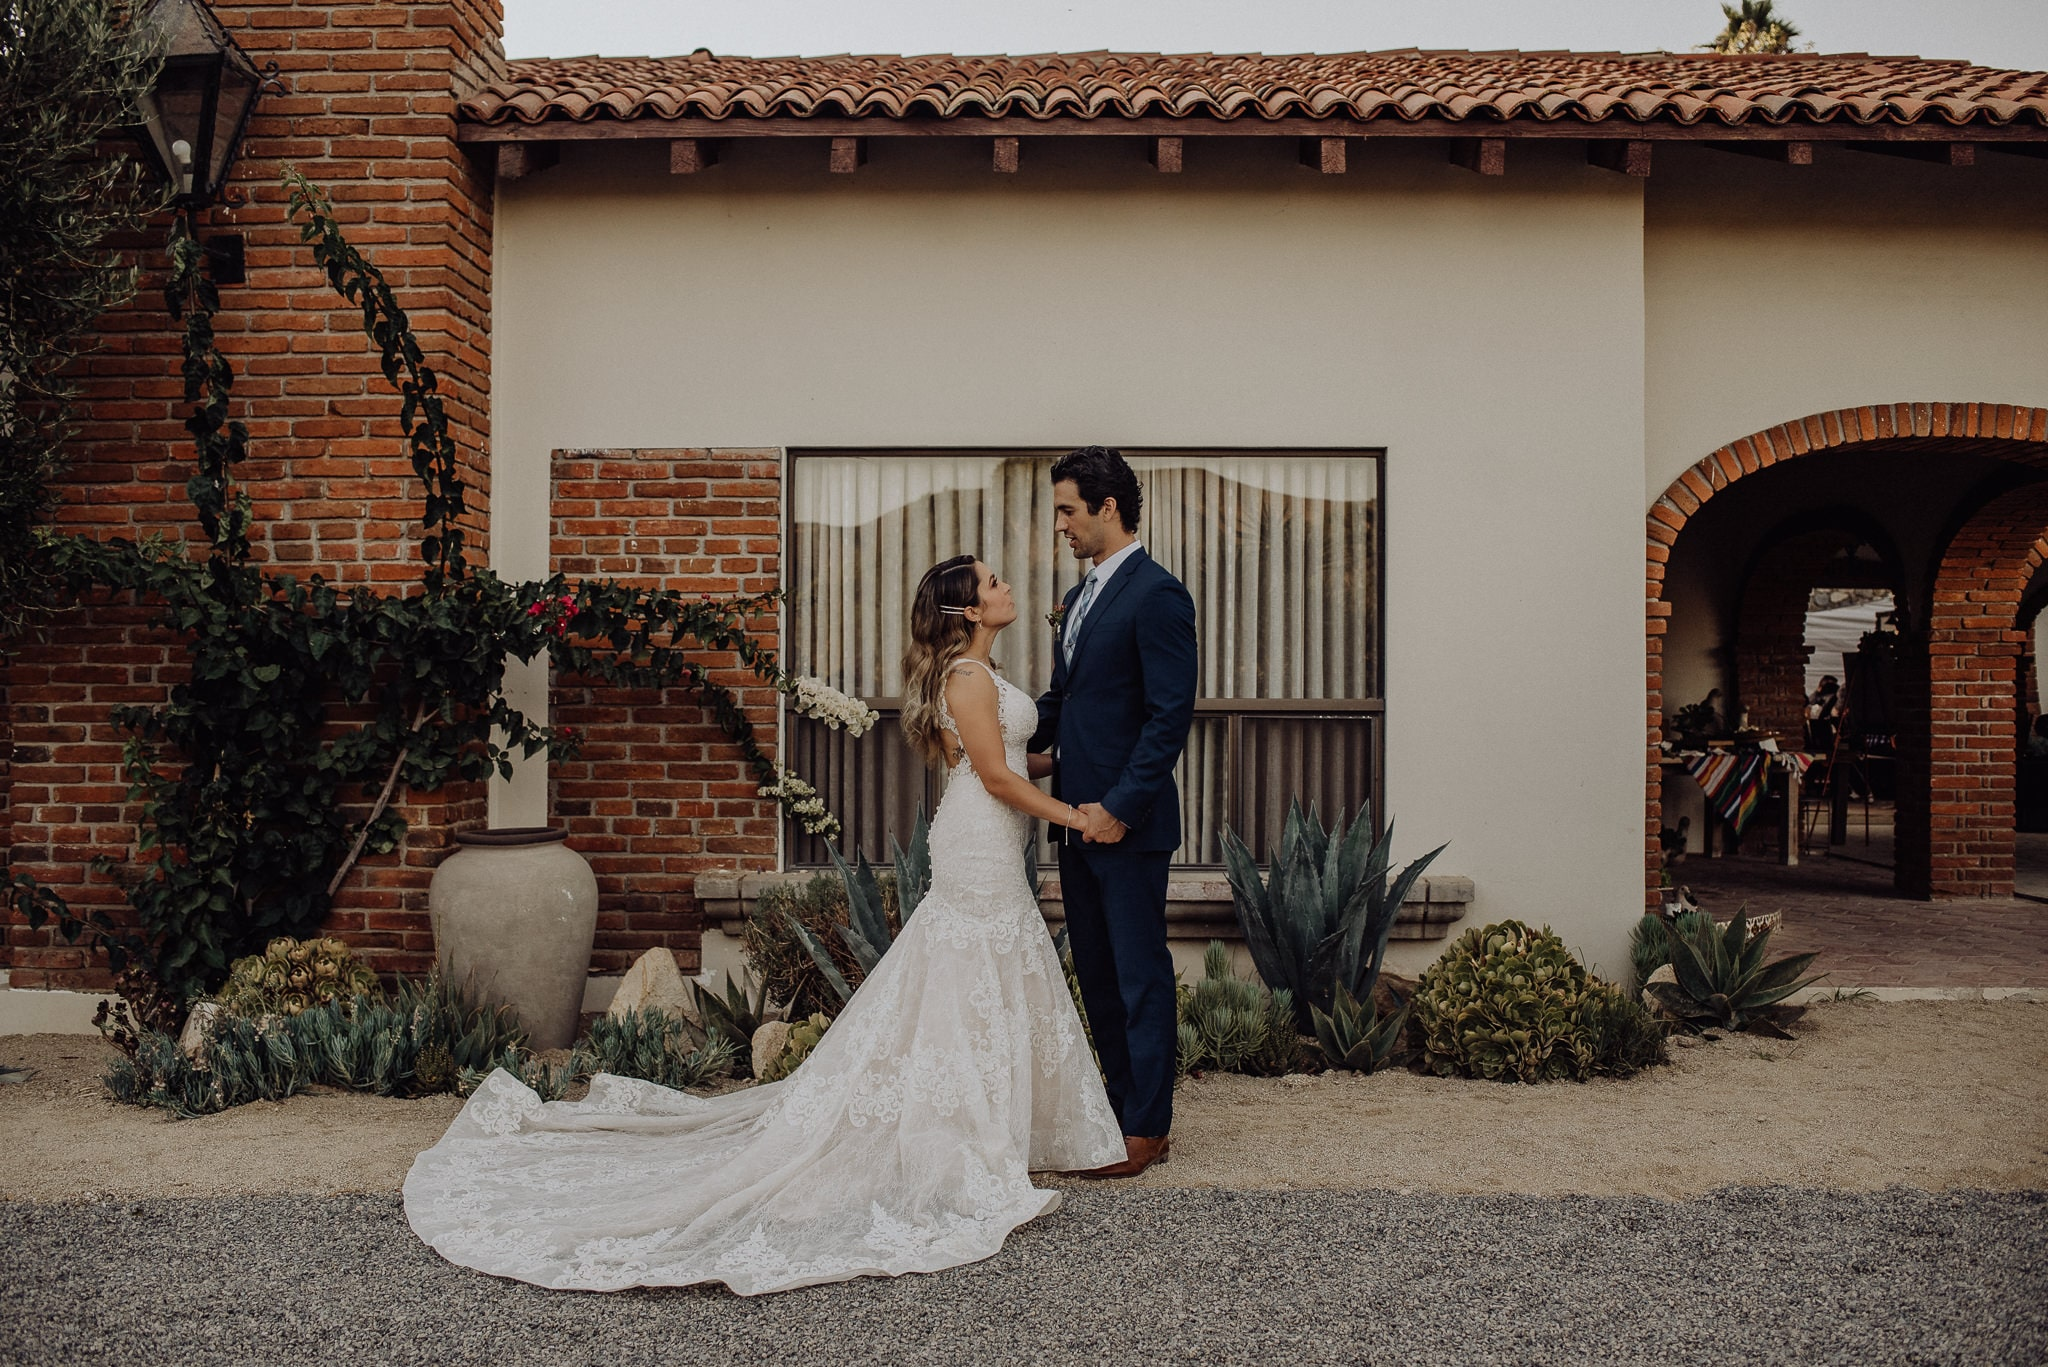 Janet + Stephen | The Barelas Vineyard Wedding in Baja